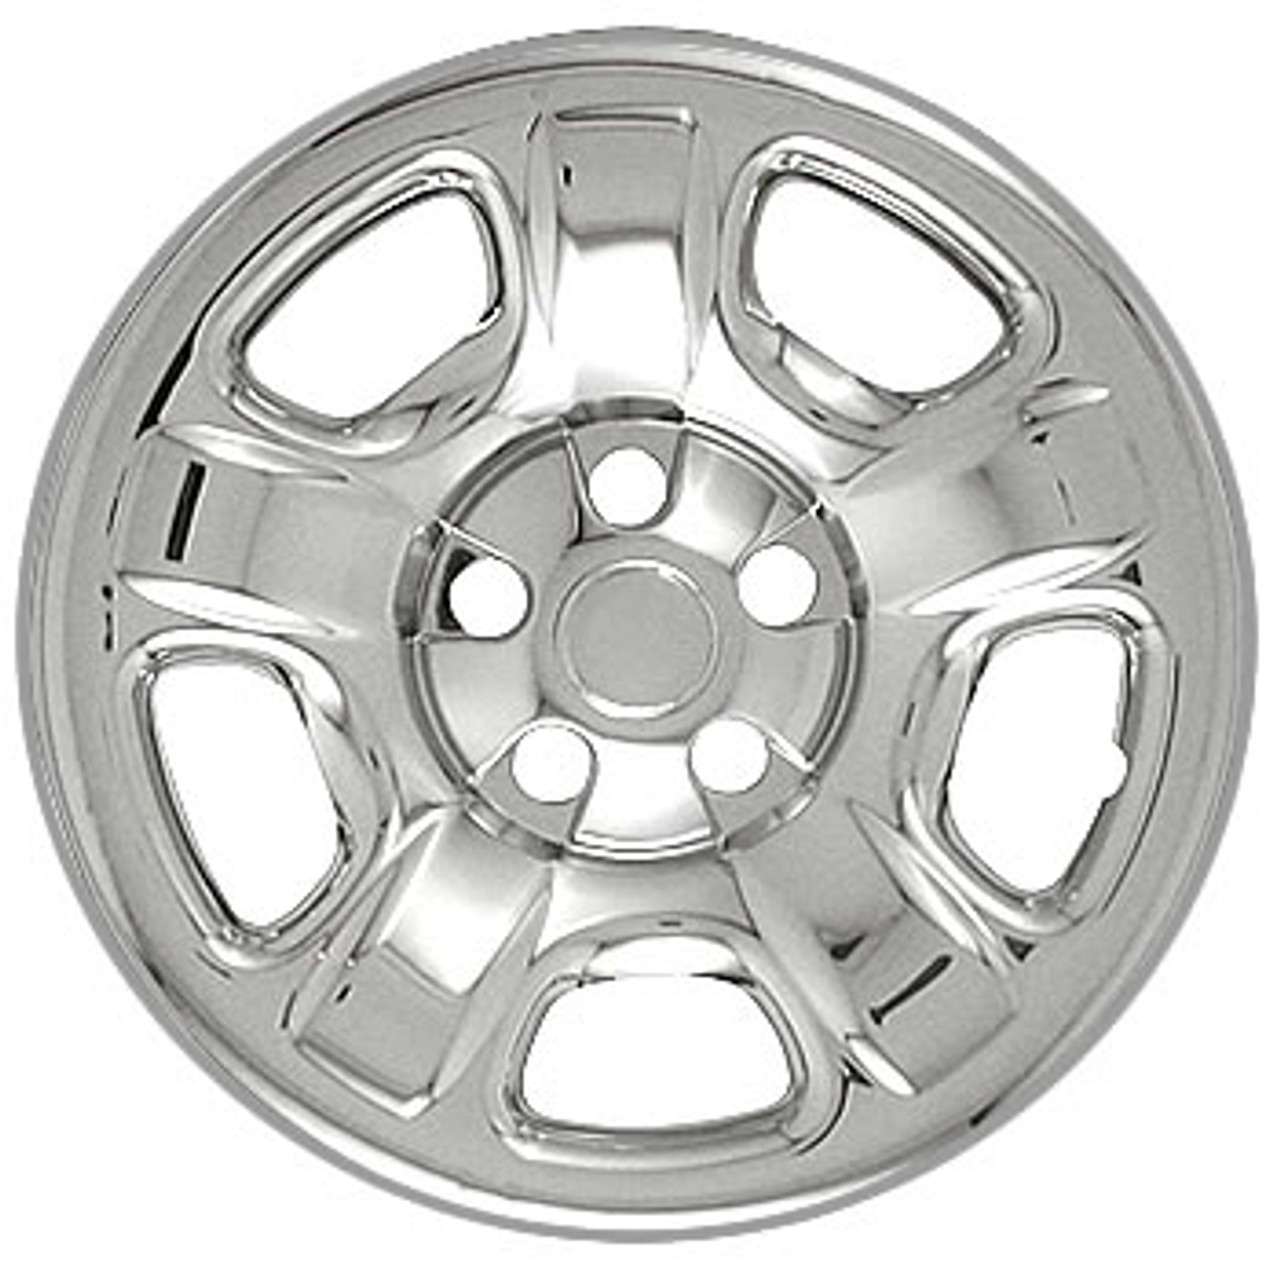 jeep jk subwoofer best place to find wiring and datasheet resources Jeep JK Rake 02 07 jeep liberty wheel skins 16 inch wheel covers